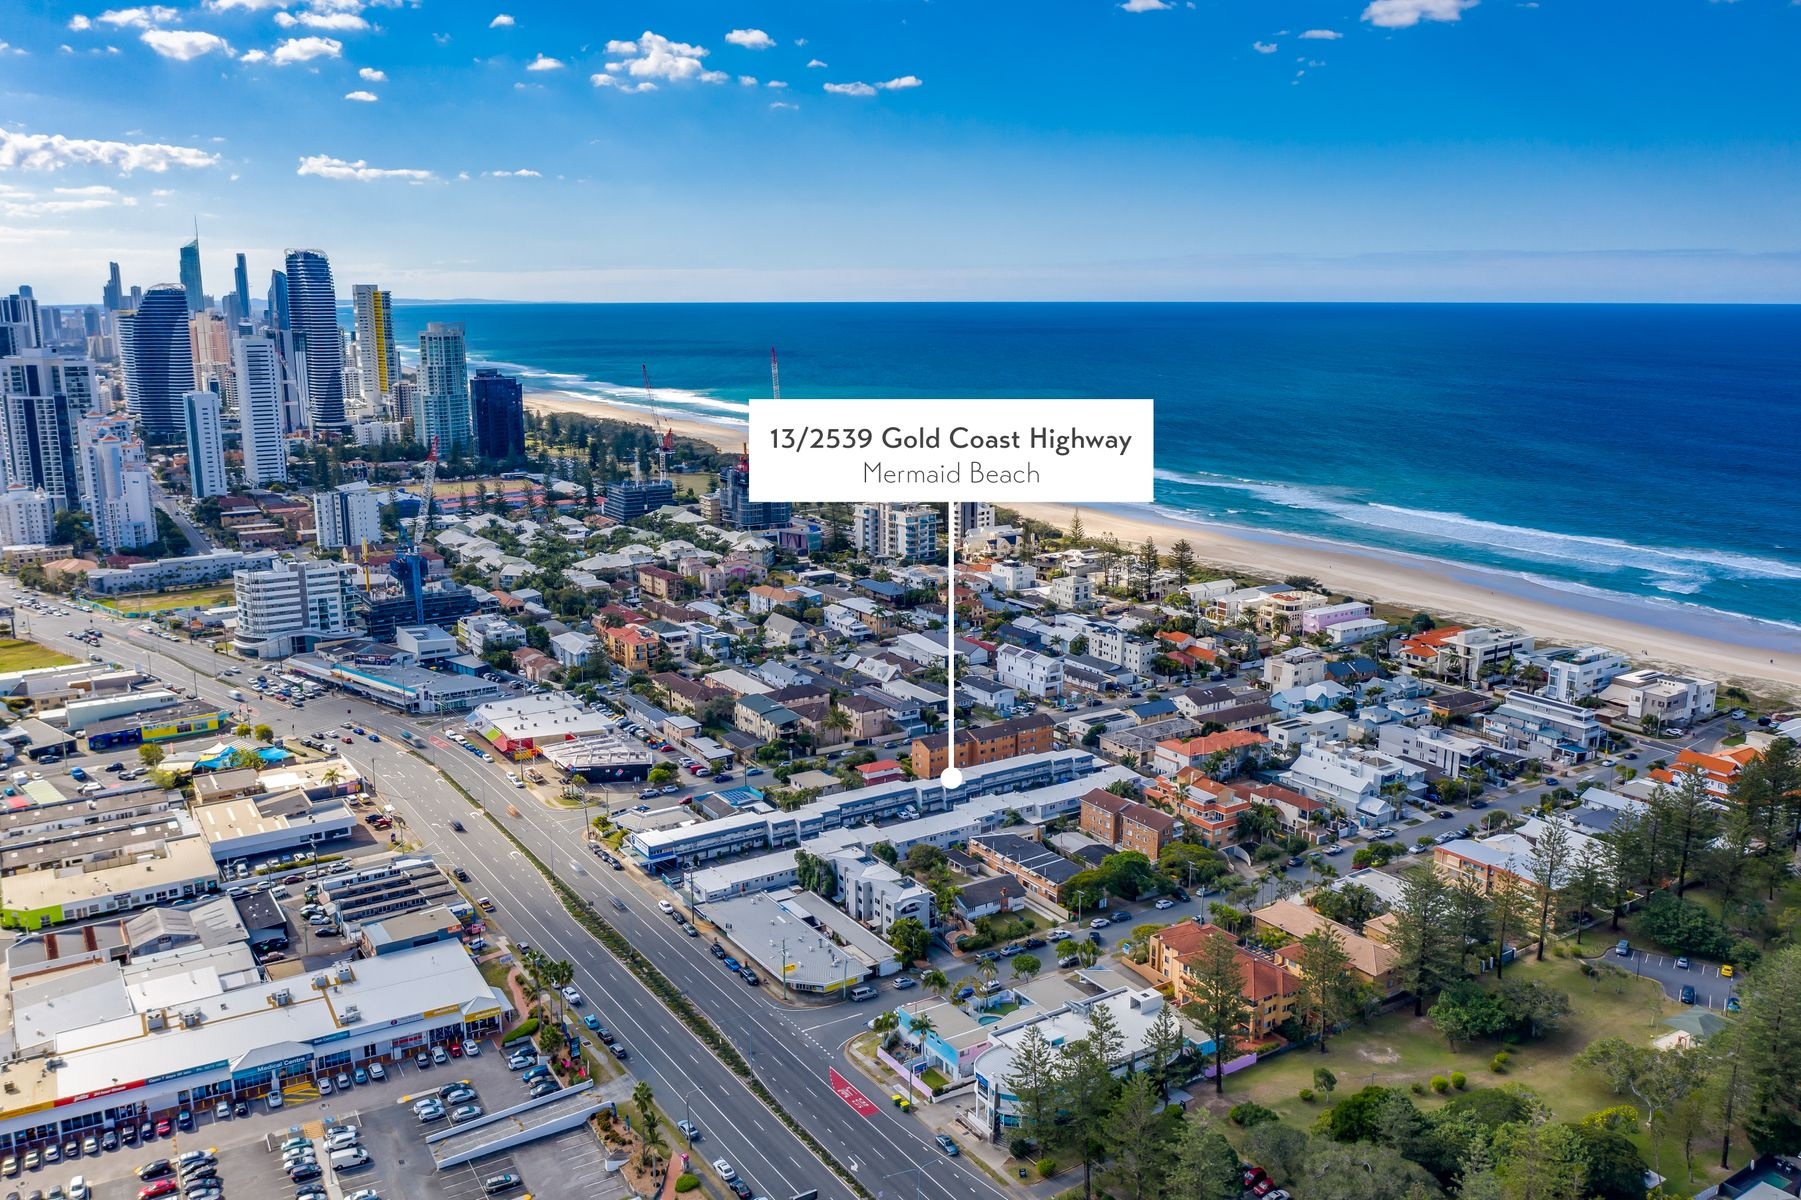 13/2539 Gold Coast Highway, Mermaid Beach, QLD 4218